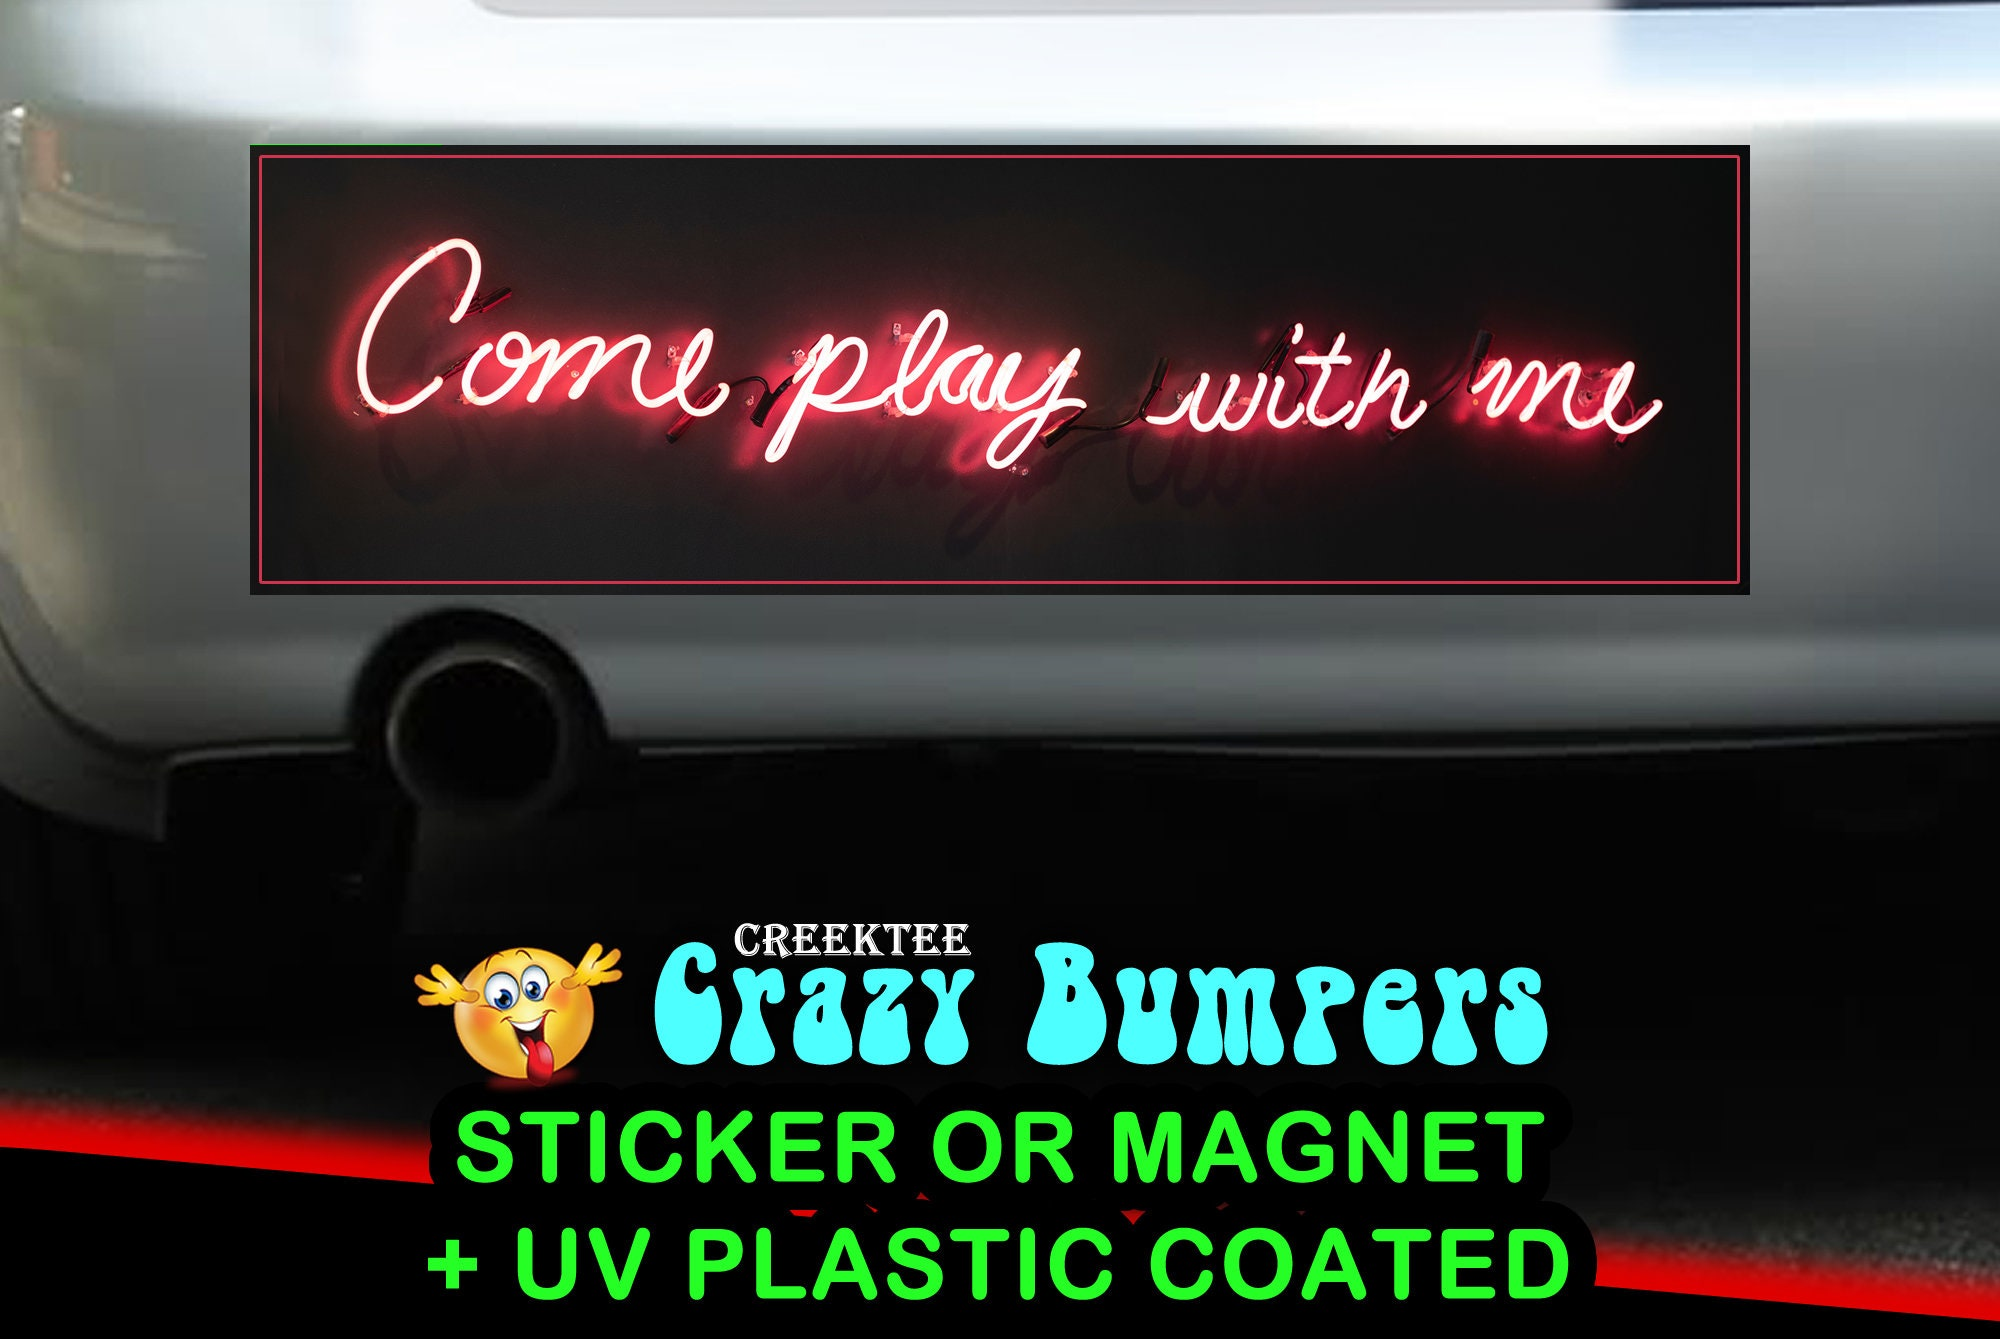 CAD$9.74 - Neon Come Play With Me 10 x 3 Bumper Sticker or Magnet - Custom changes and orders welcomed!